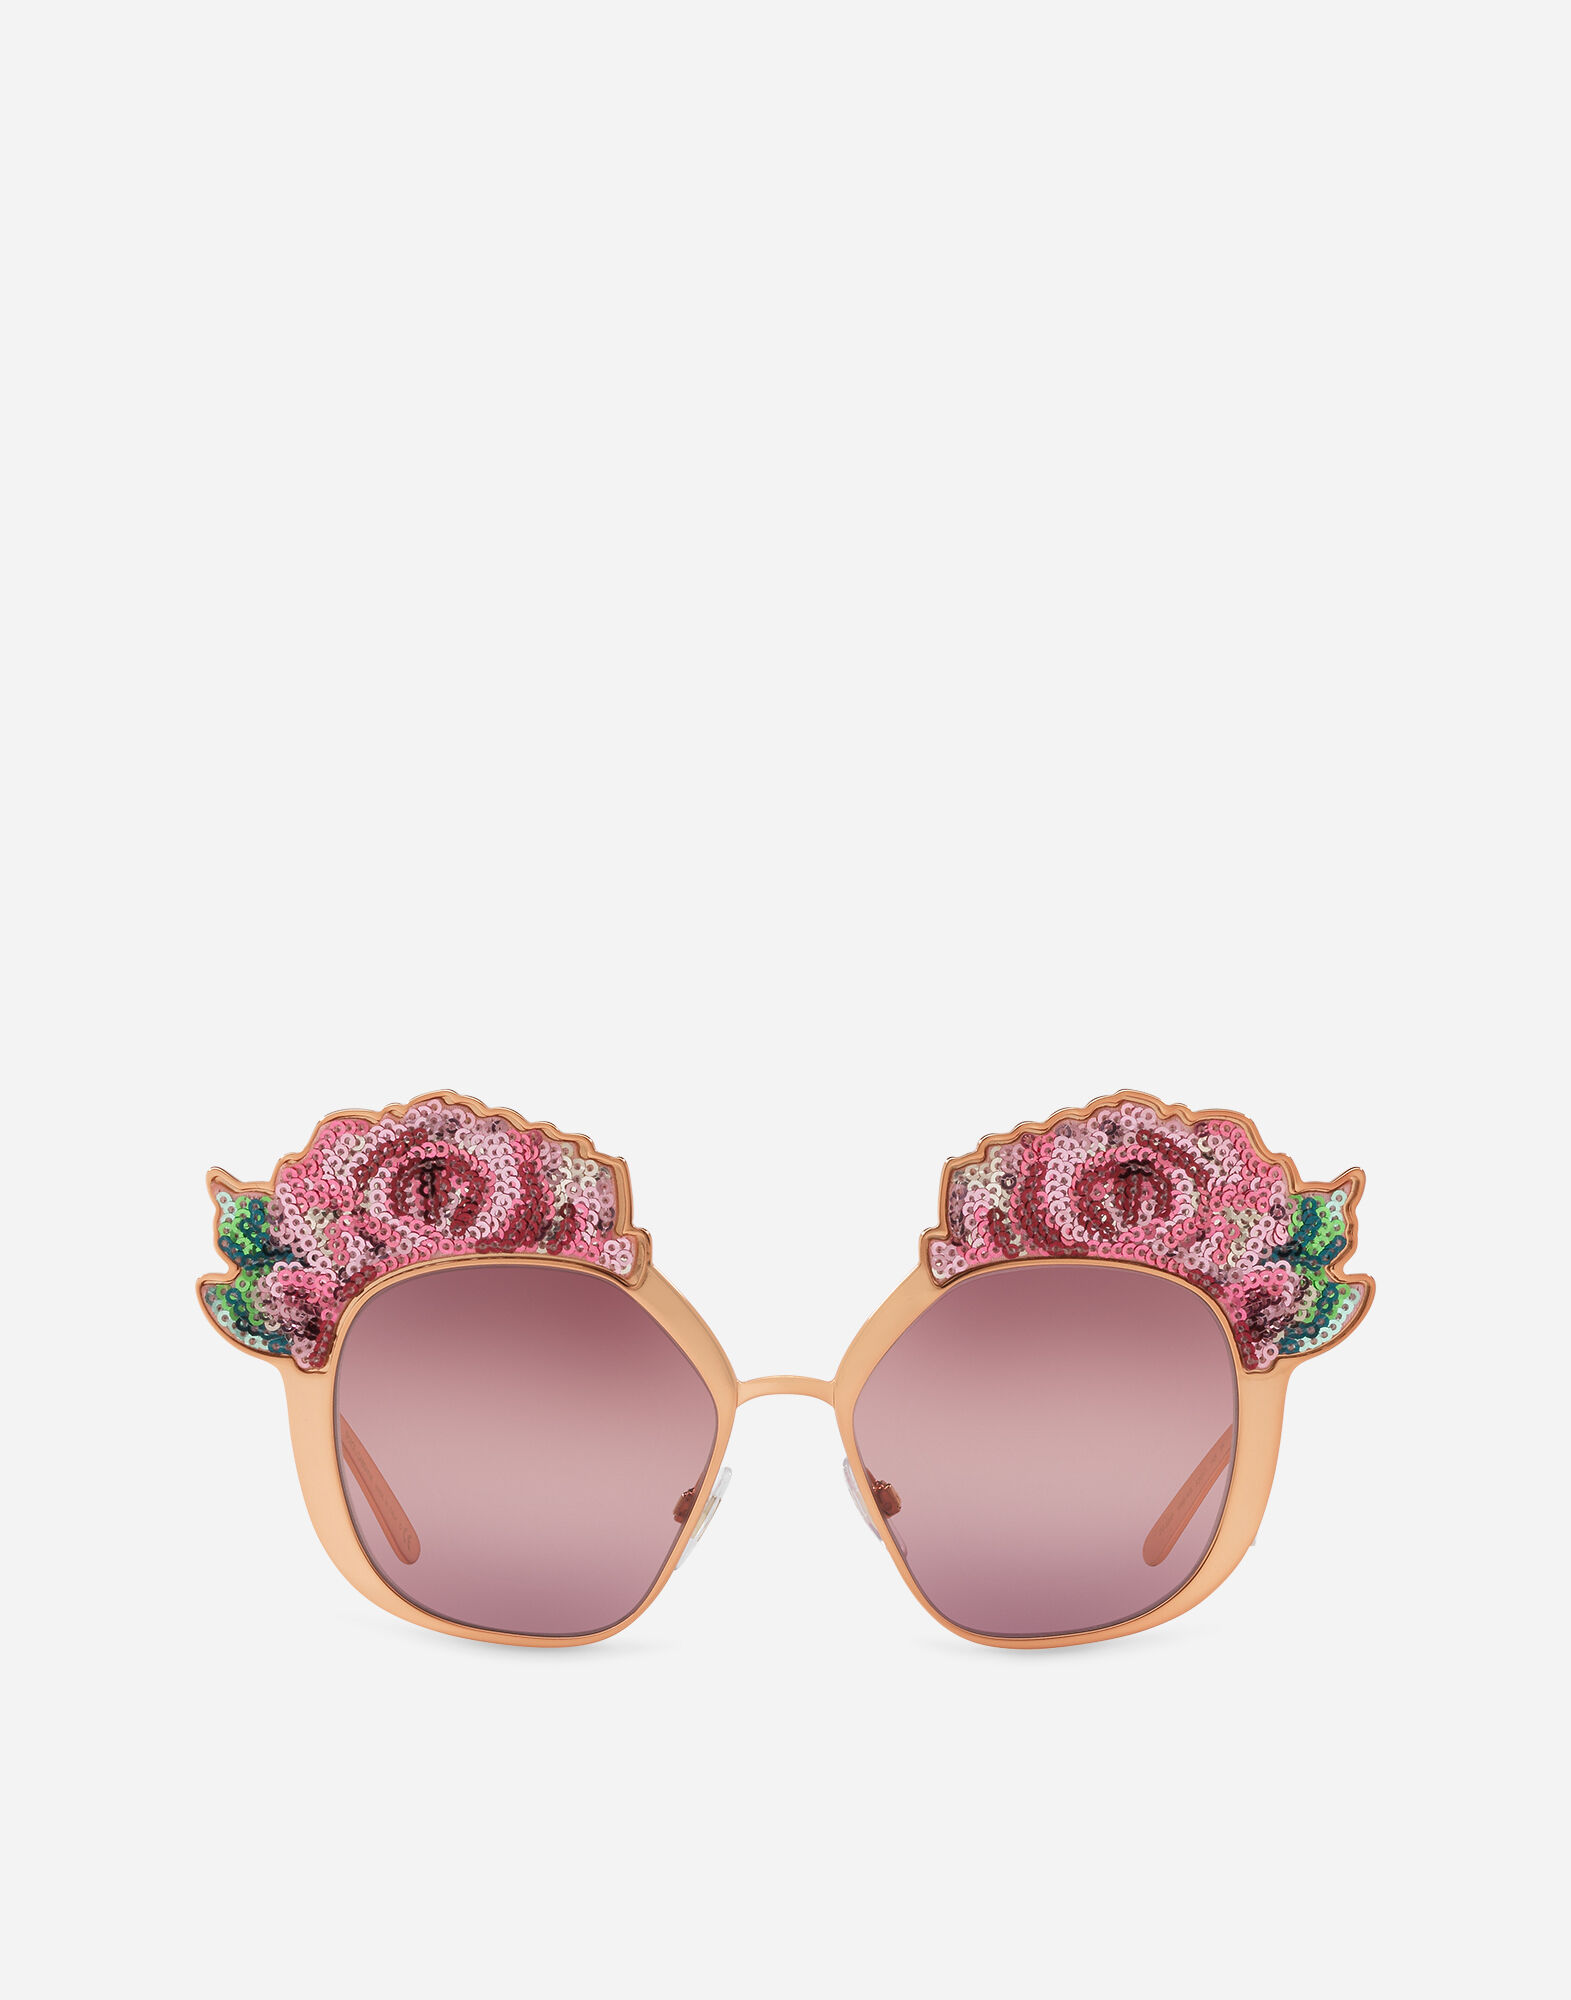 SUNGLASSES WITH ROSE EMBROIDERED METAL FRAMES